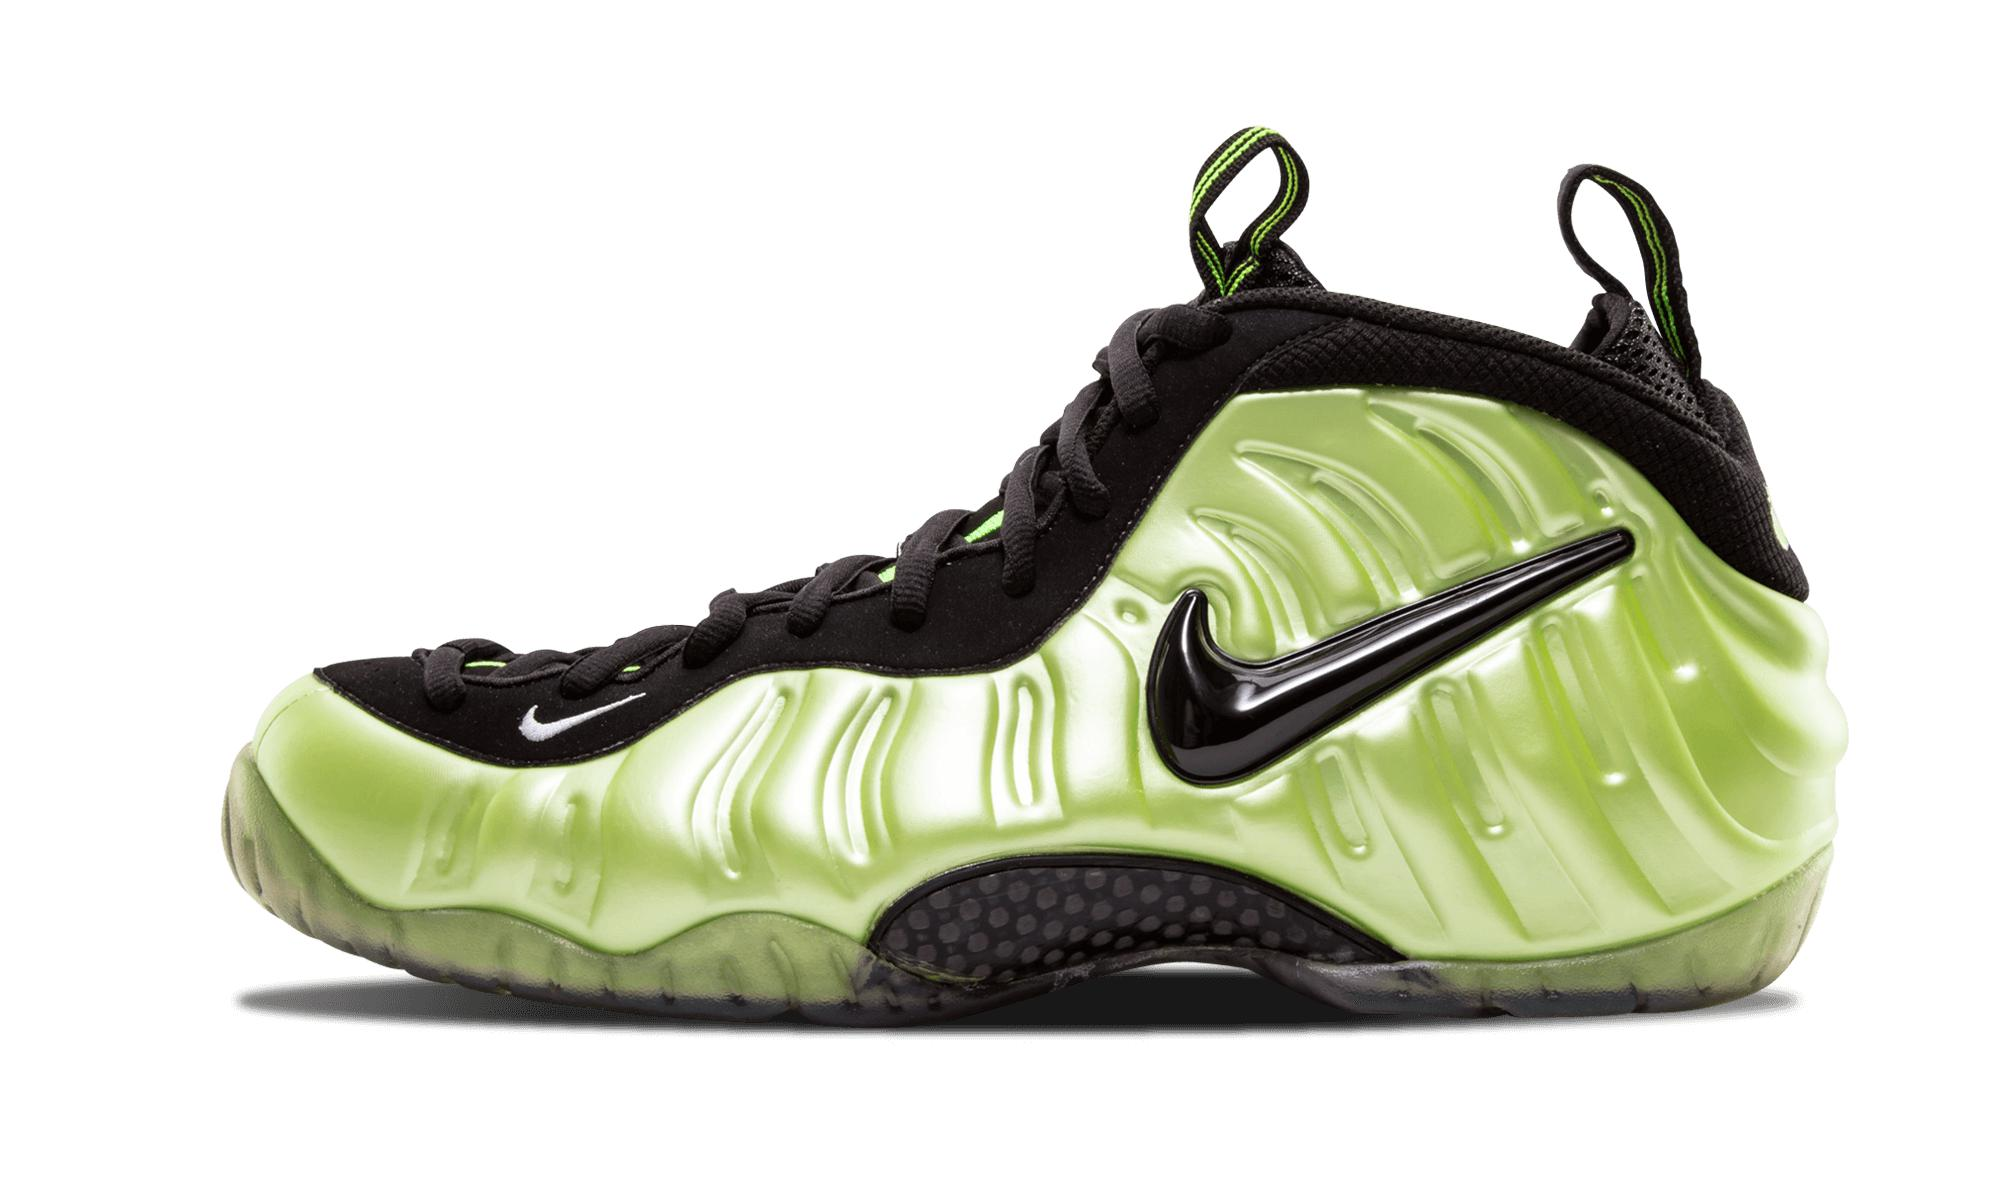 8ad6659a8bcd8 Nike Air Foamposite Pro 2010 in Green for Men - Save 5% - Lyst